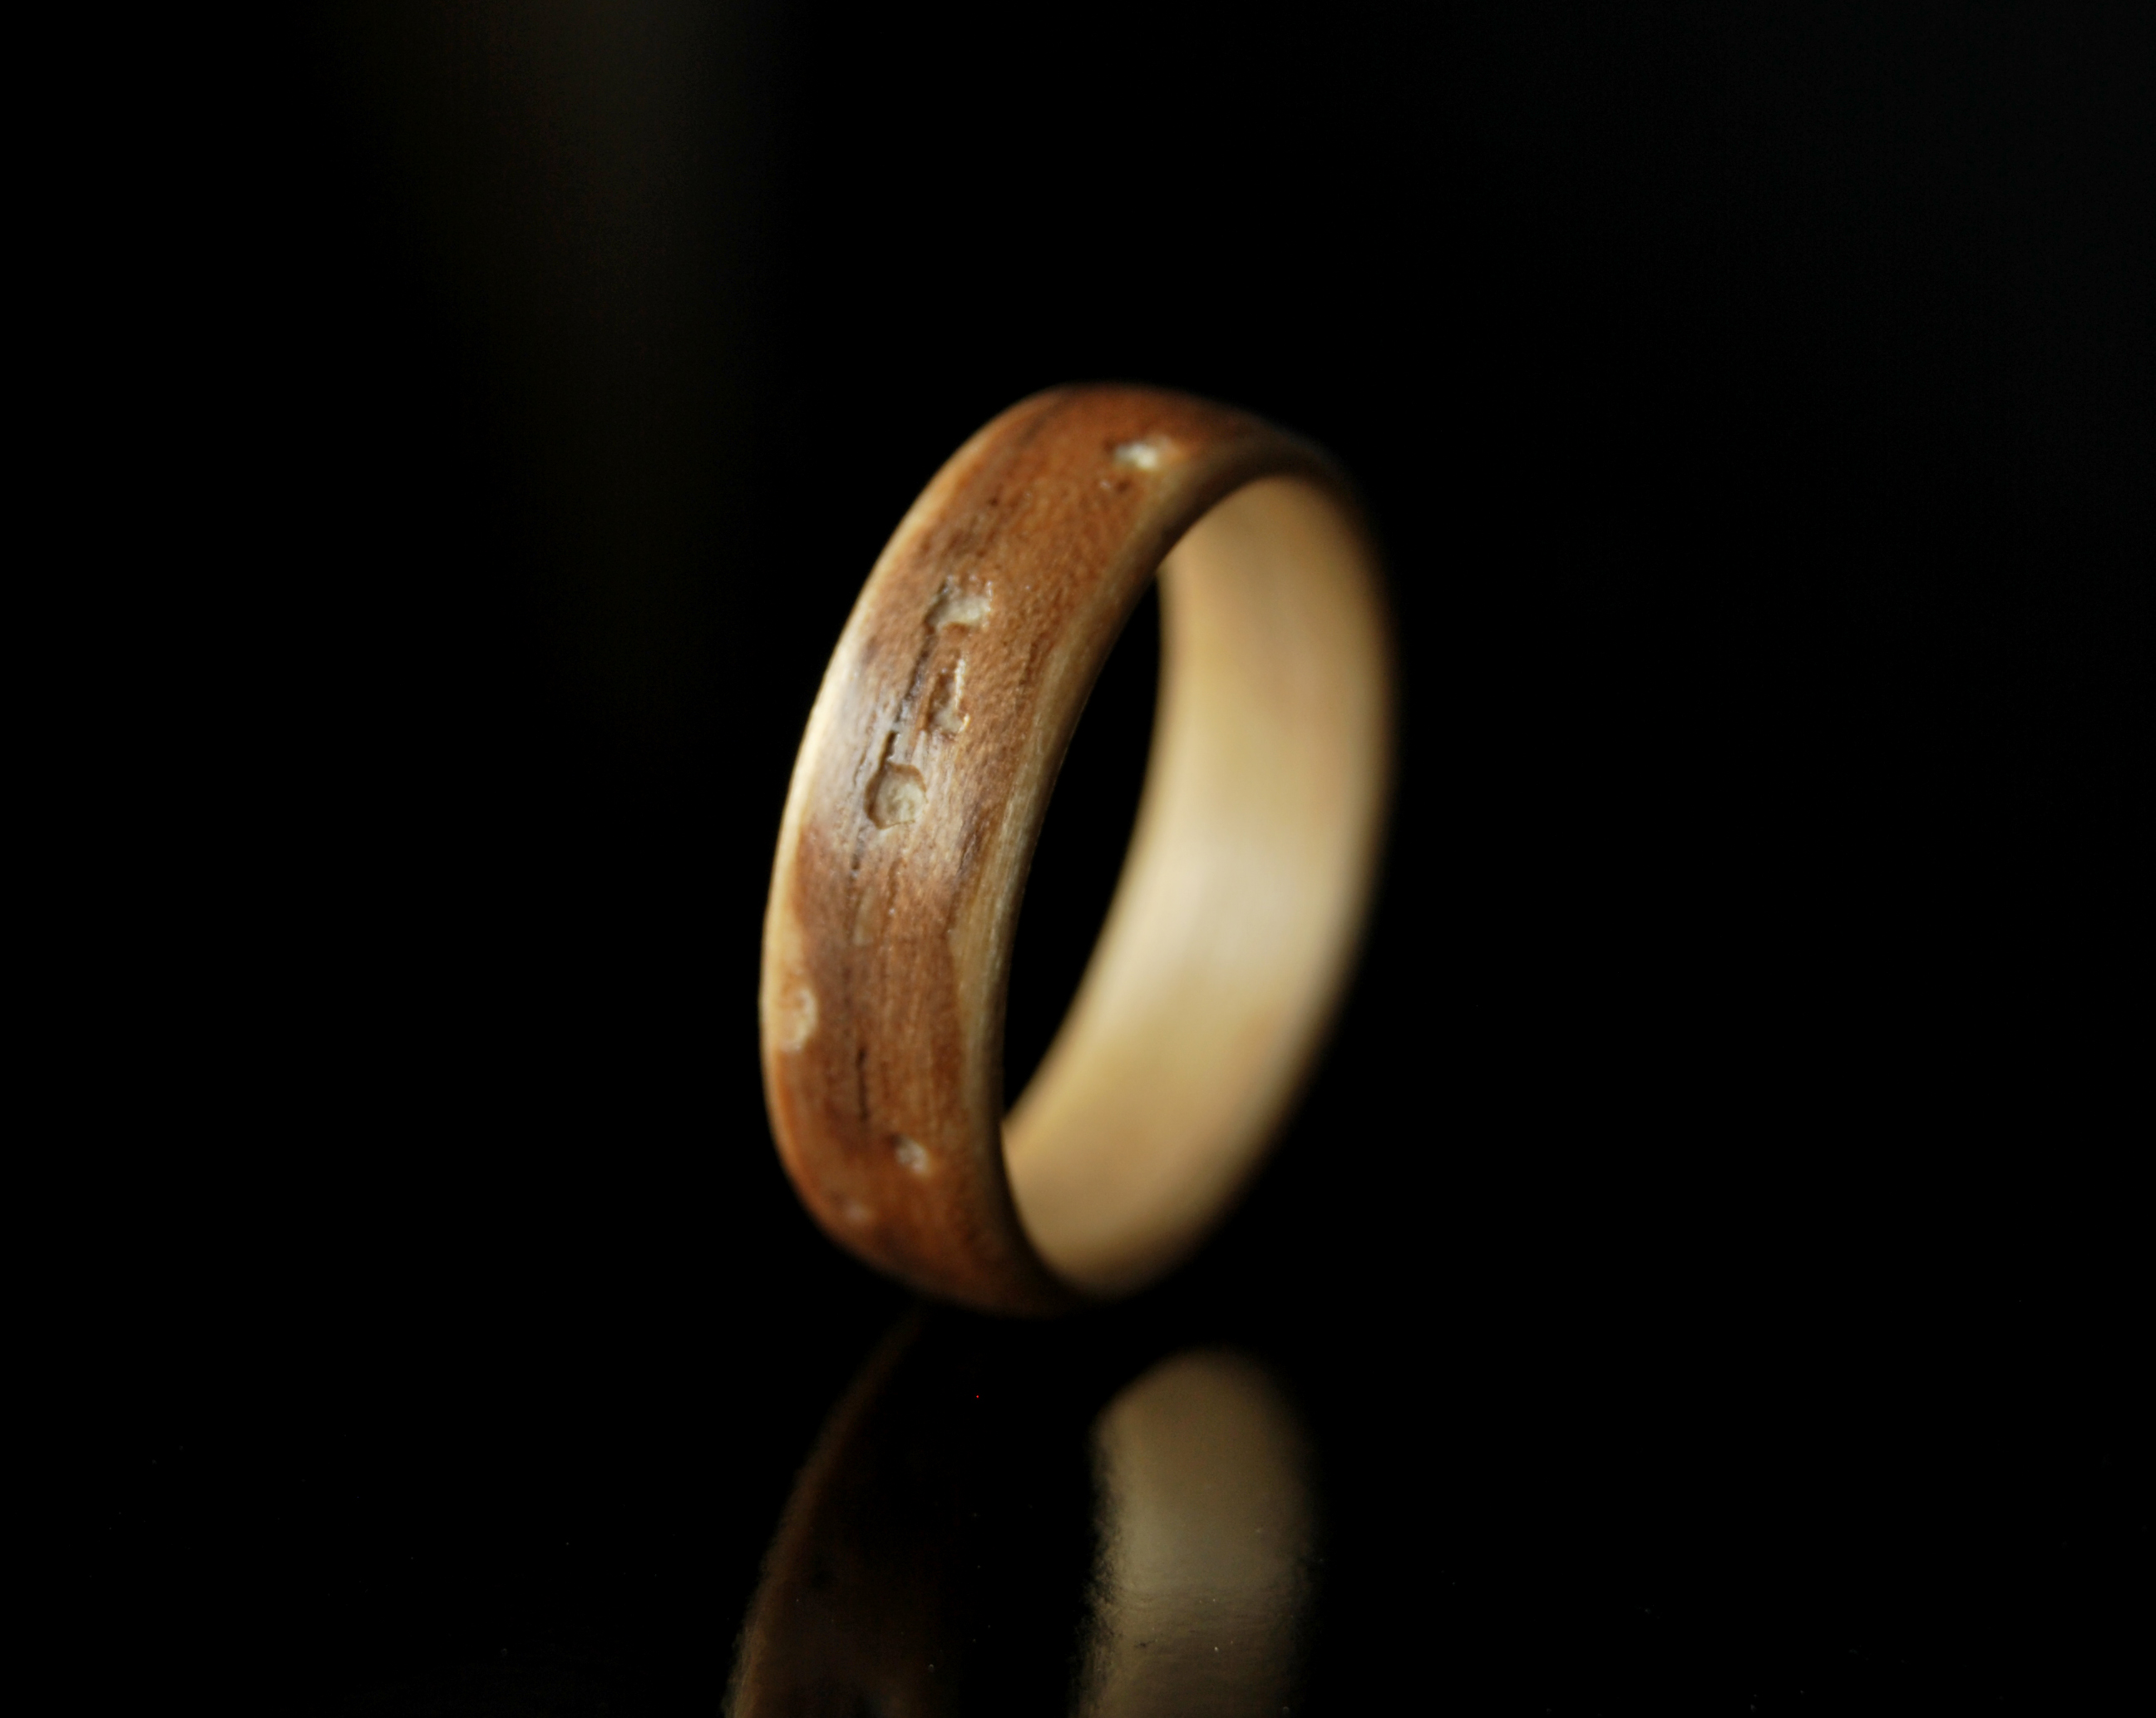 Unique Rings For Her \u00b7 Handmade Wood Ring Women \u00b7 Wenge /& Maple Bentwood Ring \u2022 Gift For Her \u2022 Valentine Gift \u2022  Valentine Gift For Her